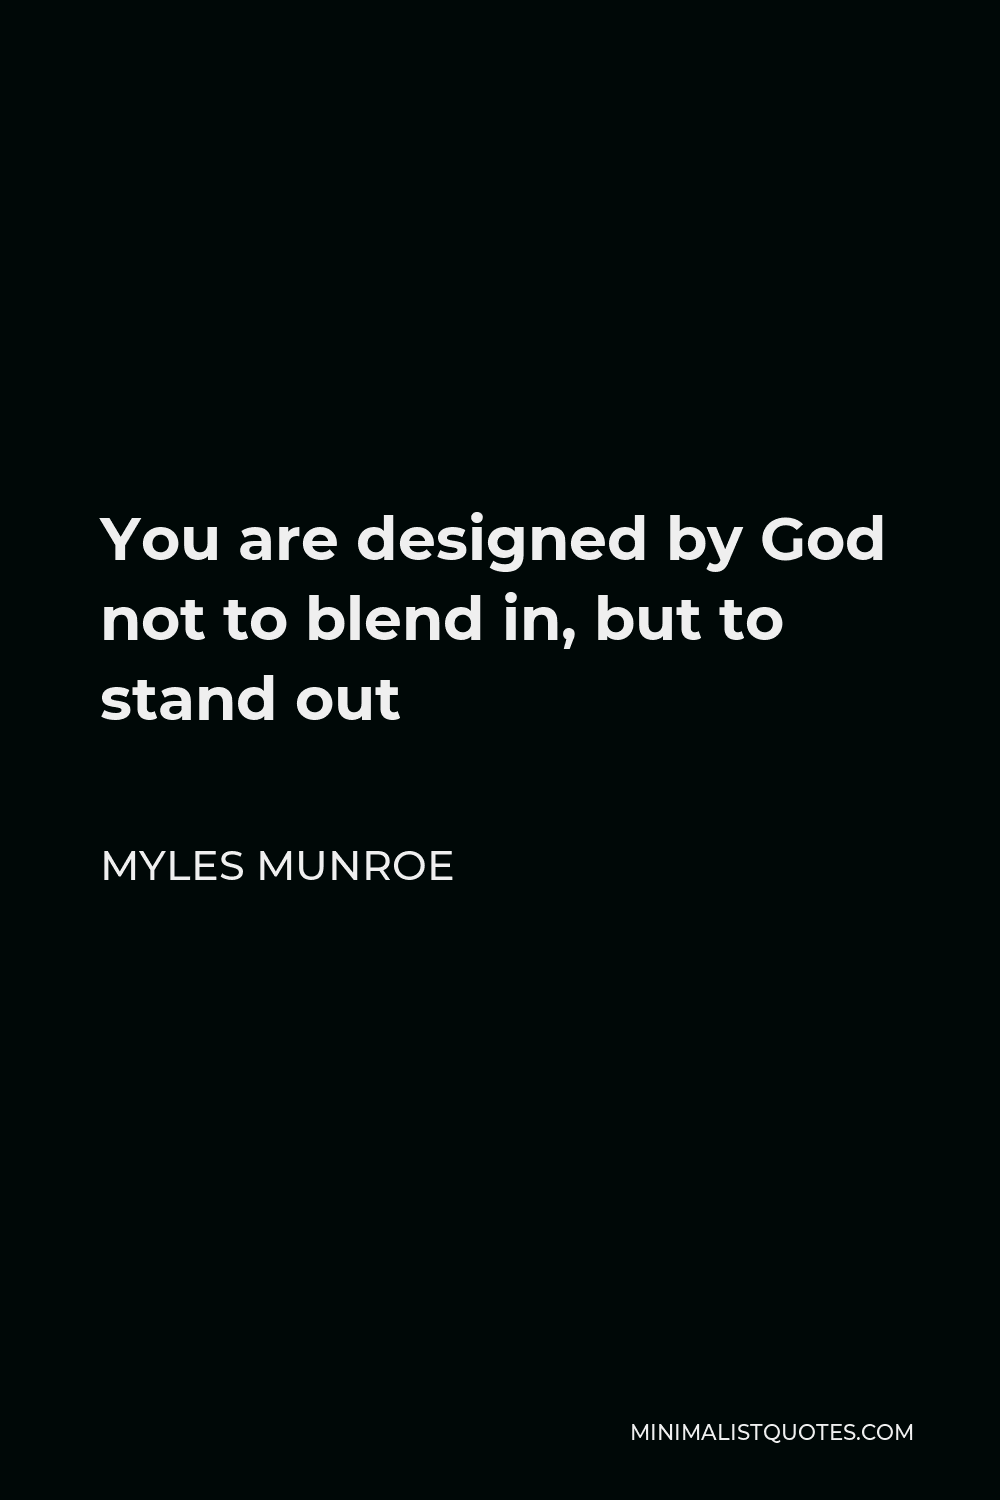 Myles Munroe Quote - You are designed by God not to blend in, but to stand out